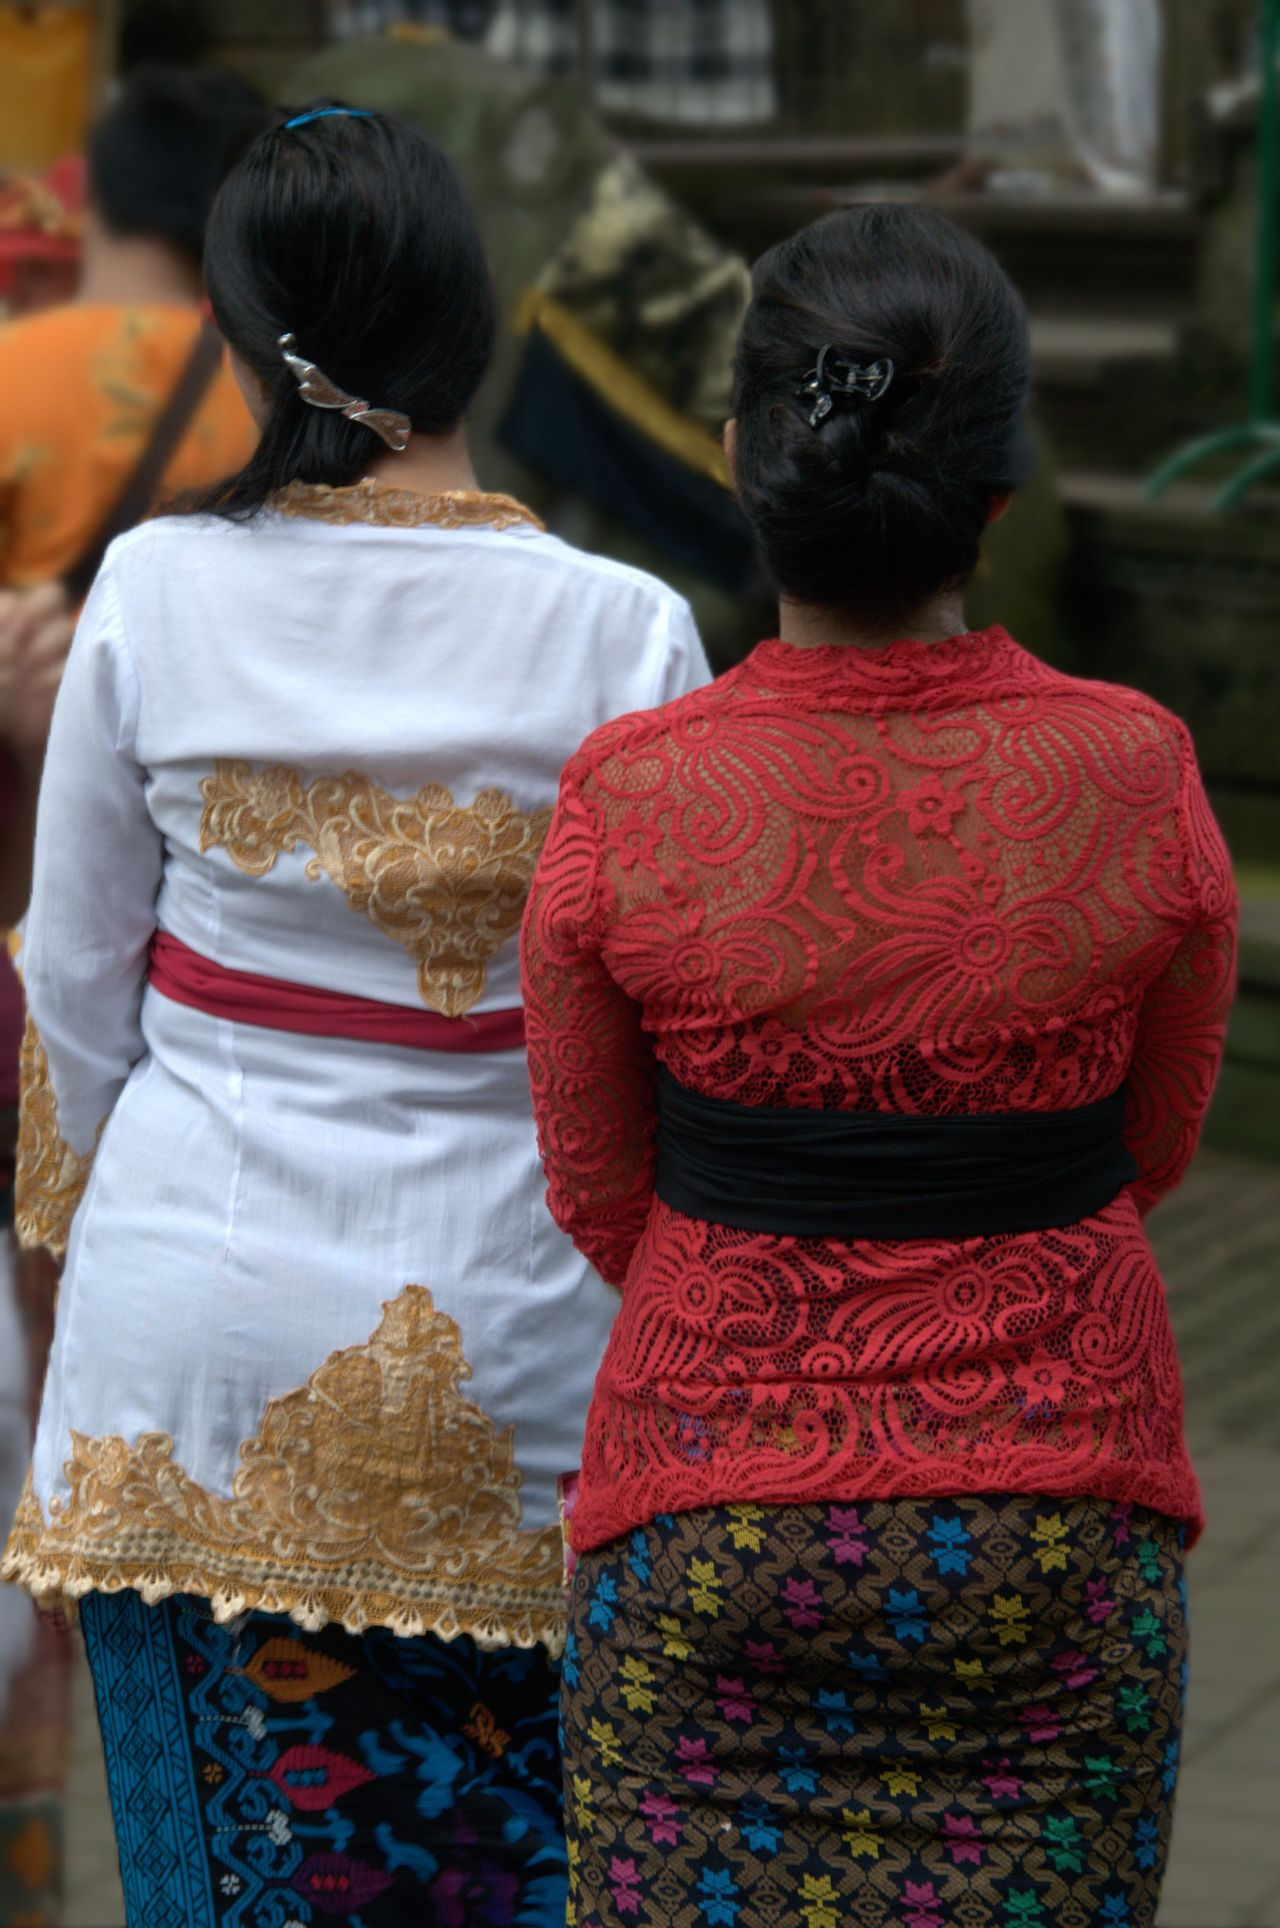 Balinese Women In Ceremonial Costume Ceremony Religious Ceremonies Ceremonial Costumes Balinese Culture People Two Women Spirituality Praying Hinduism Tradition ASIA Religion Vertical Outdoors Rear View Hindu Temple Colour Image